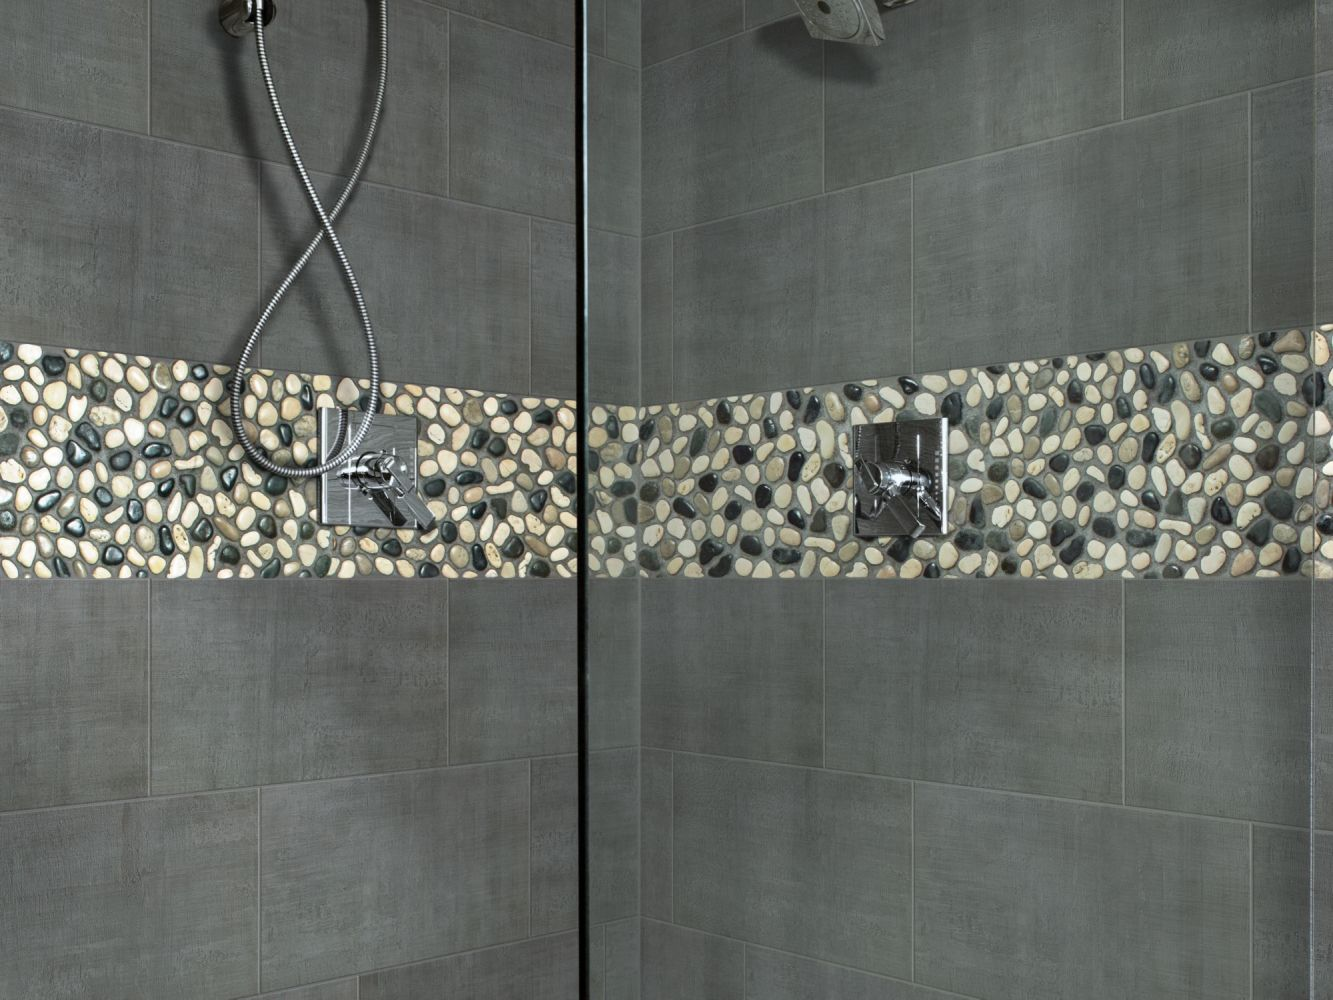 Shaw Floors Toll Brothers Ceramics River Rock Honed Tranquil Cool Blend 00159_TLL65